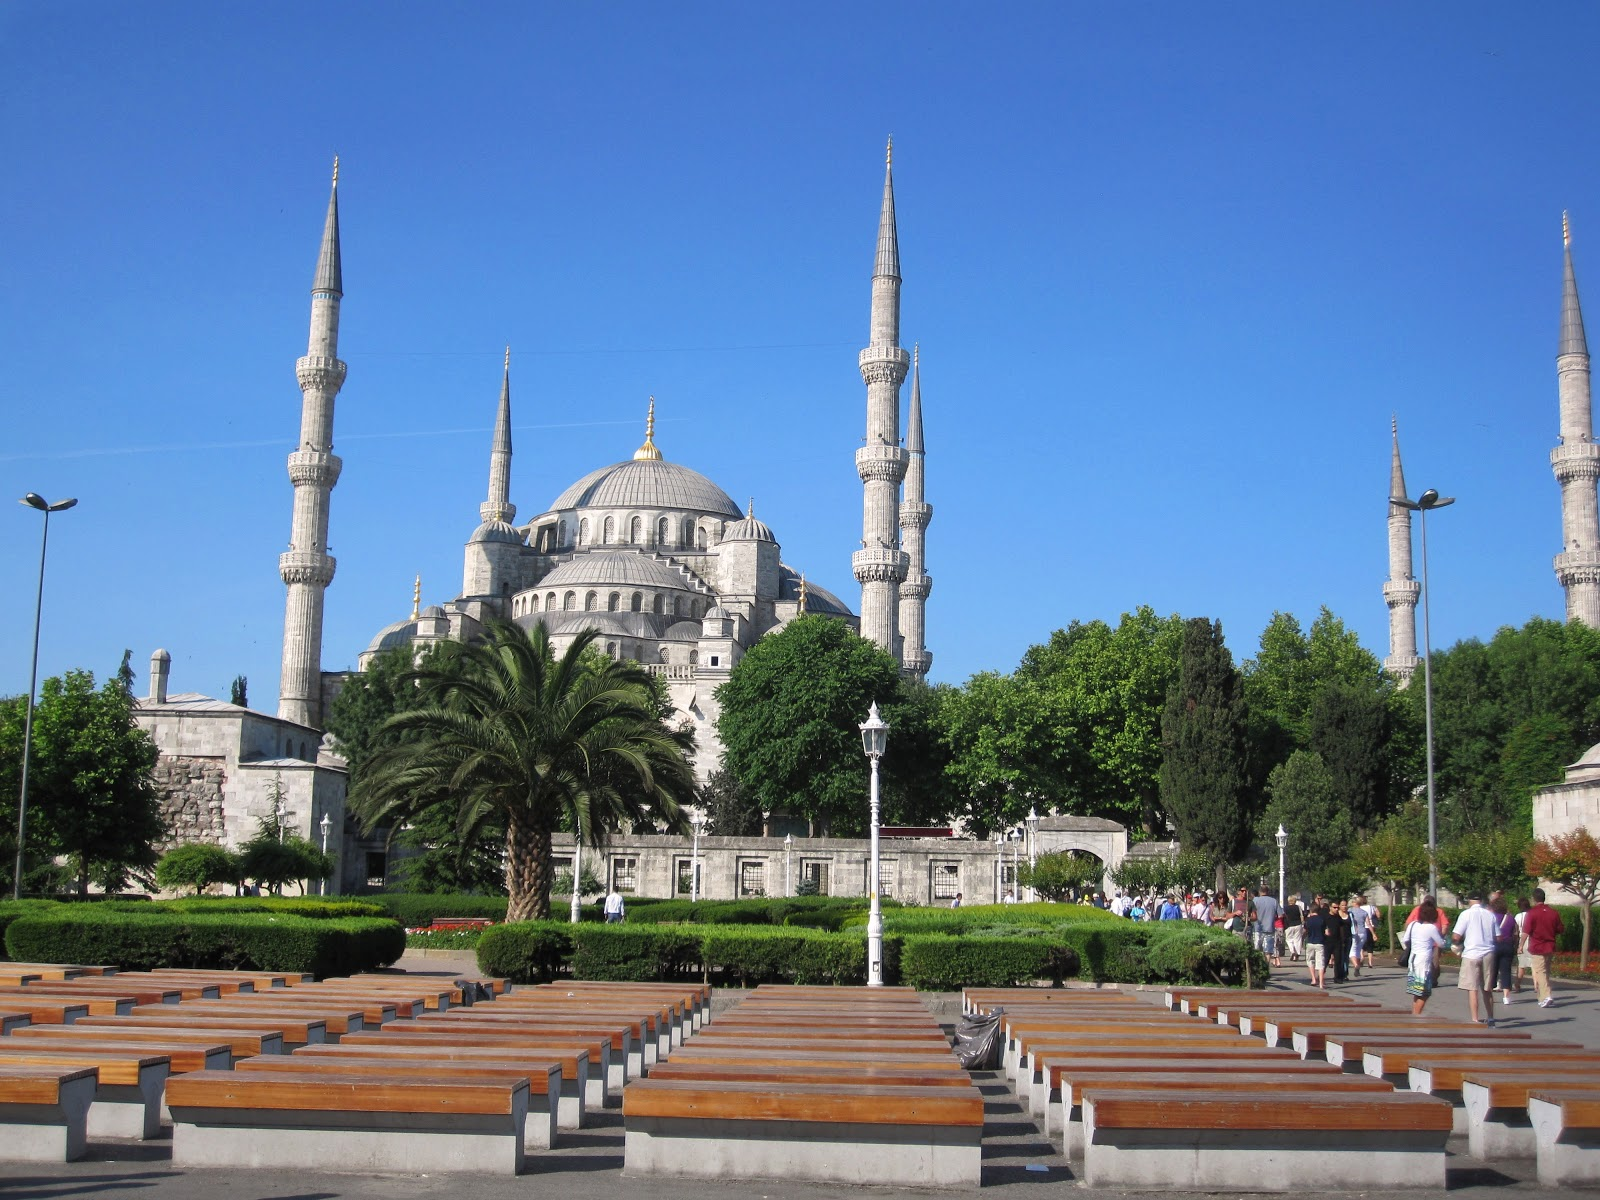 Sultan Ahmed Or Blue Mosque